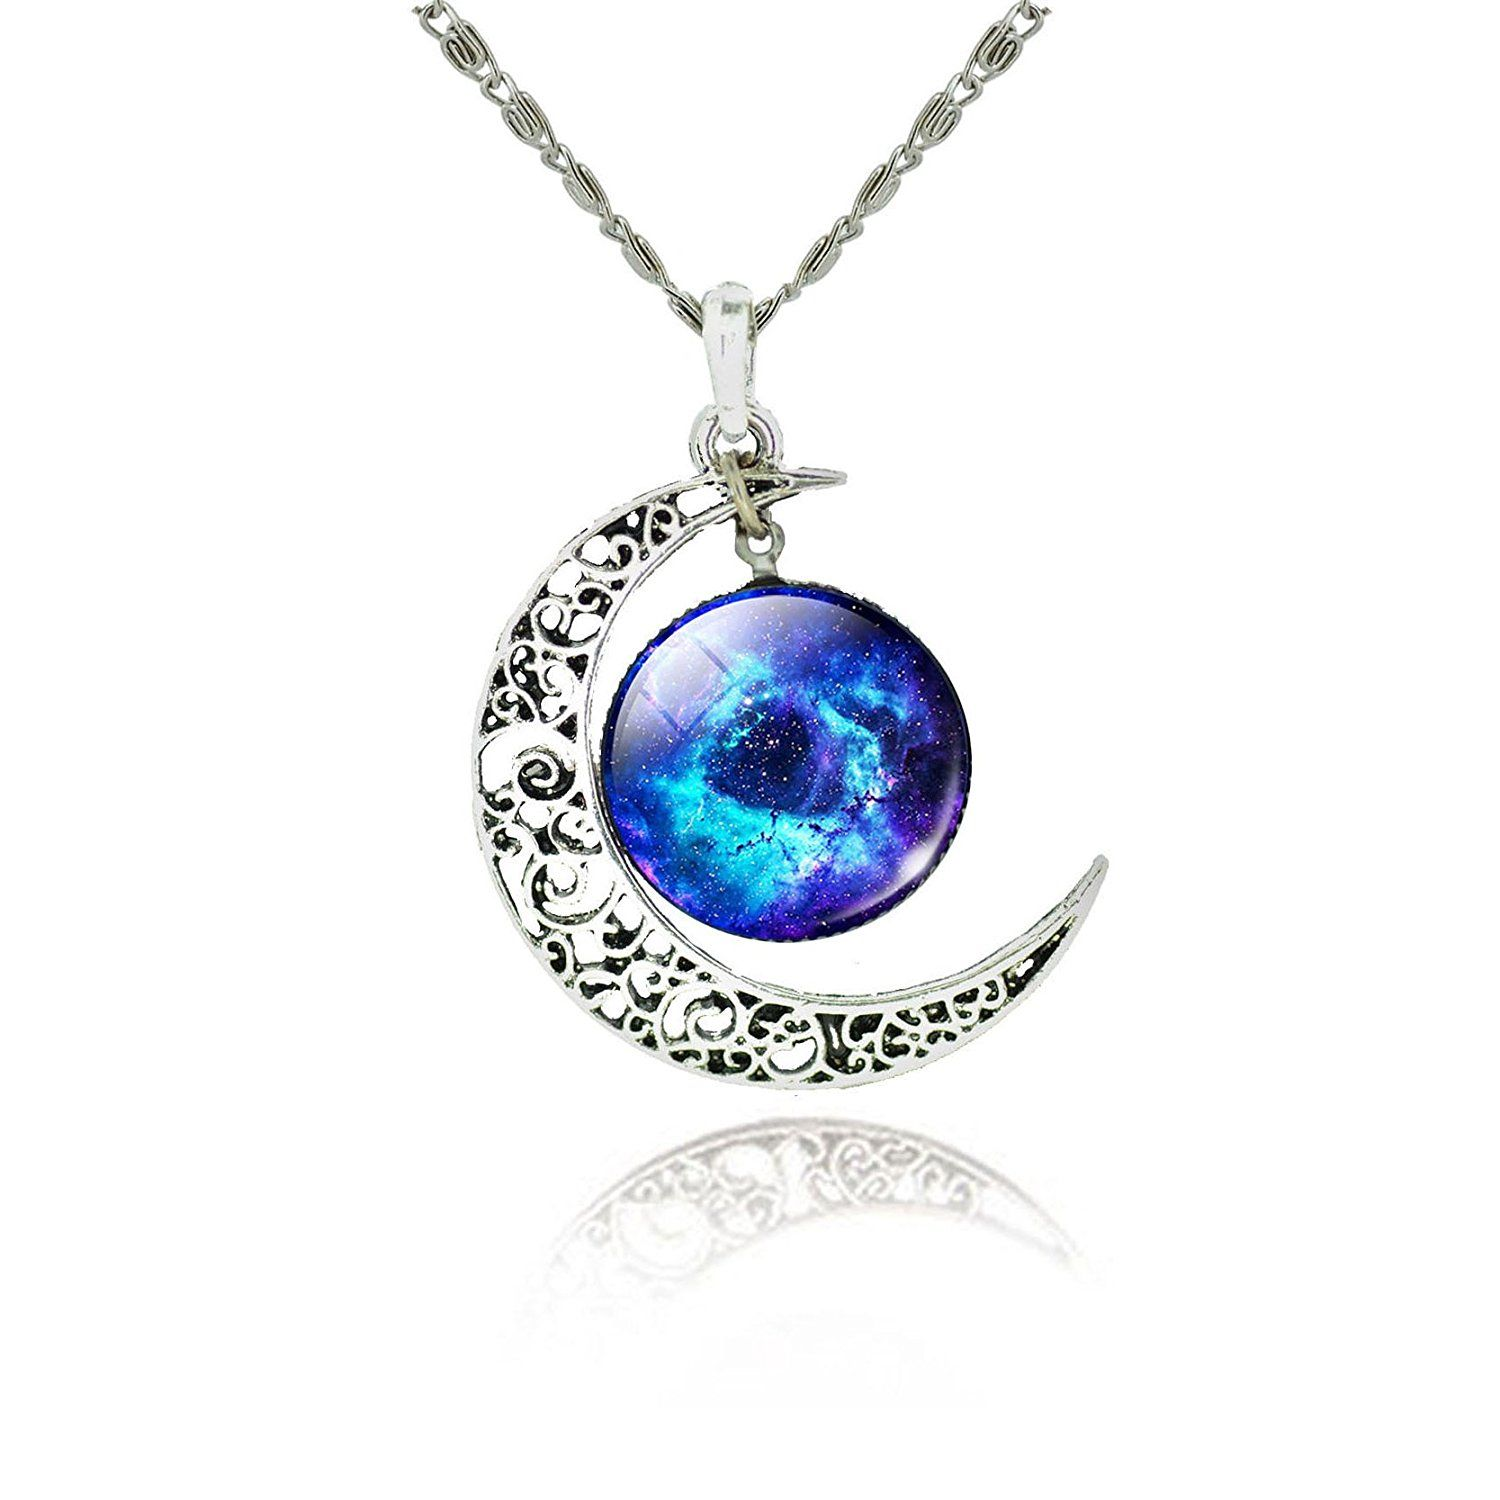 Tricess Women's Crescent Moon Galactic Universe Cabochon Pendant Necklace Gift *** Click on the image for additional details.